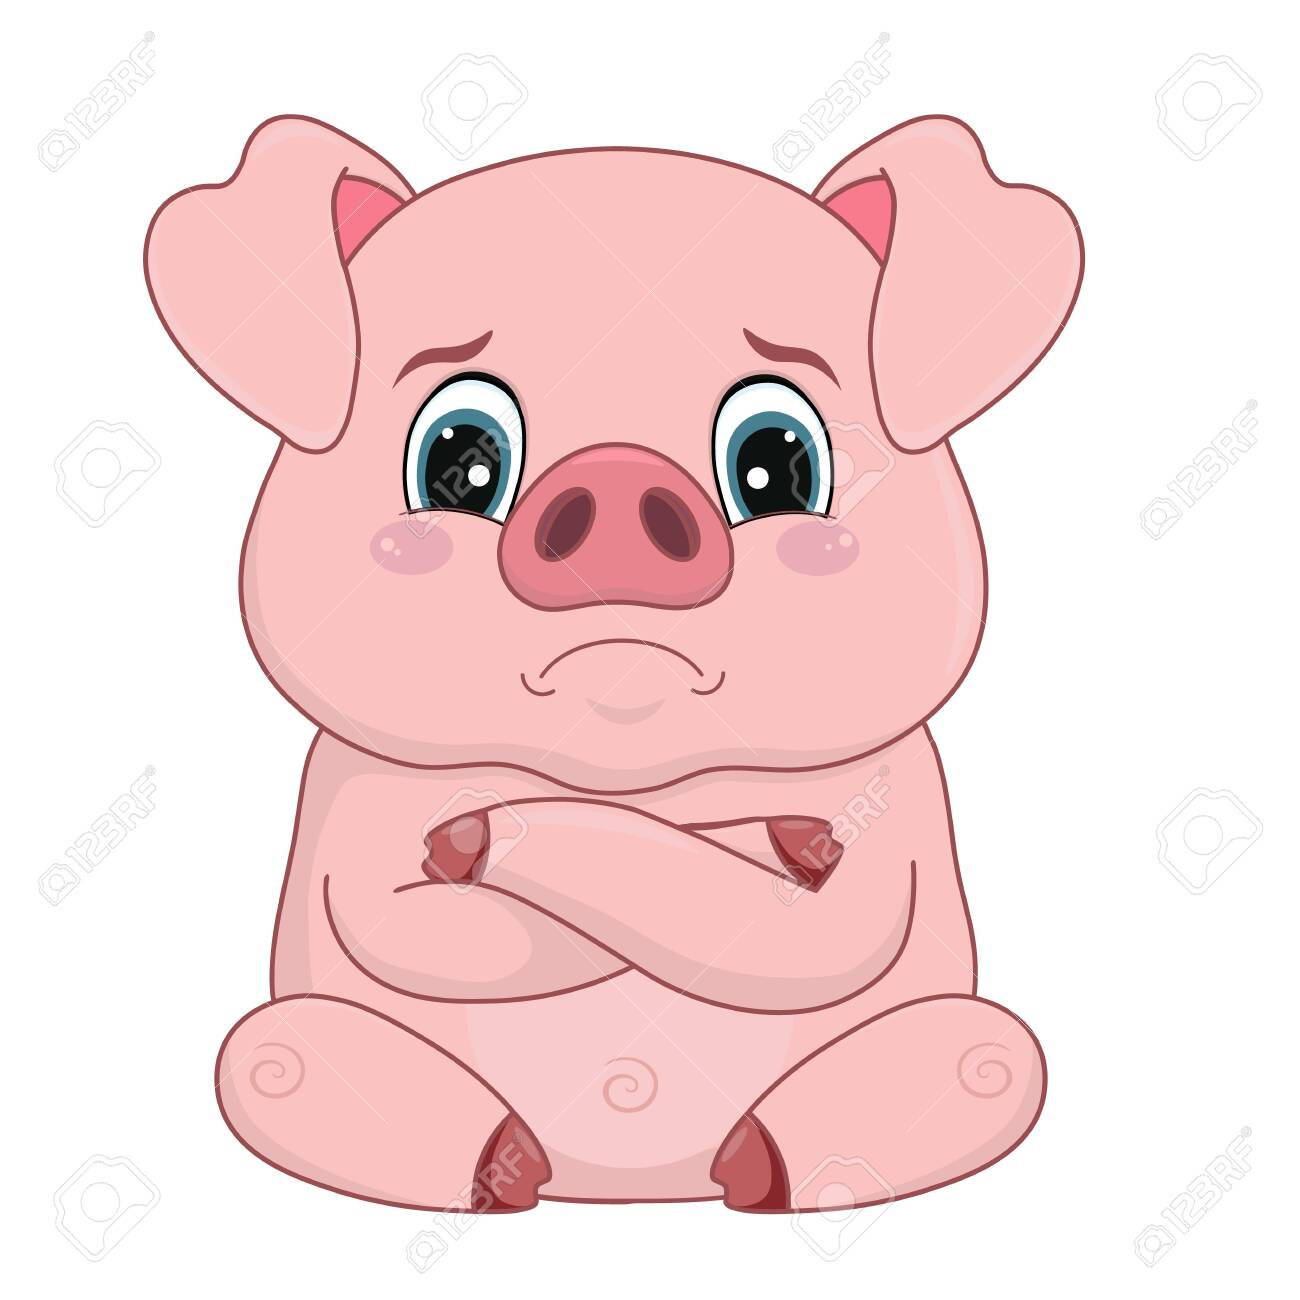 Vector illustration, cartoon pig with offended distressed face, emotion, design element isolated on white-vector - 123721064